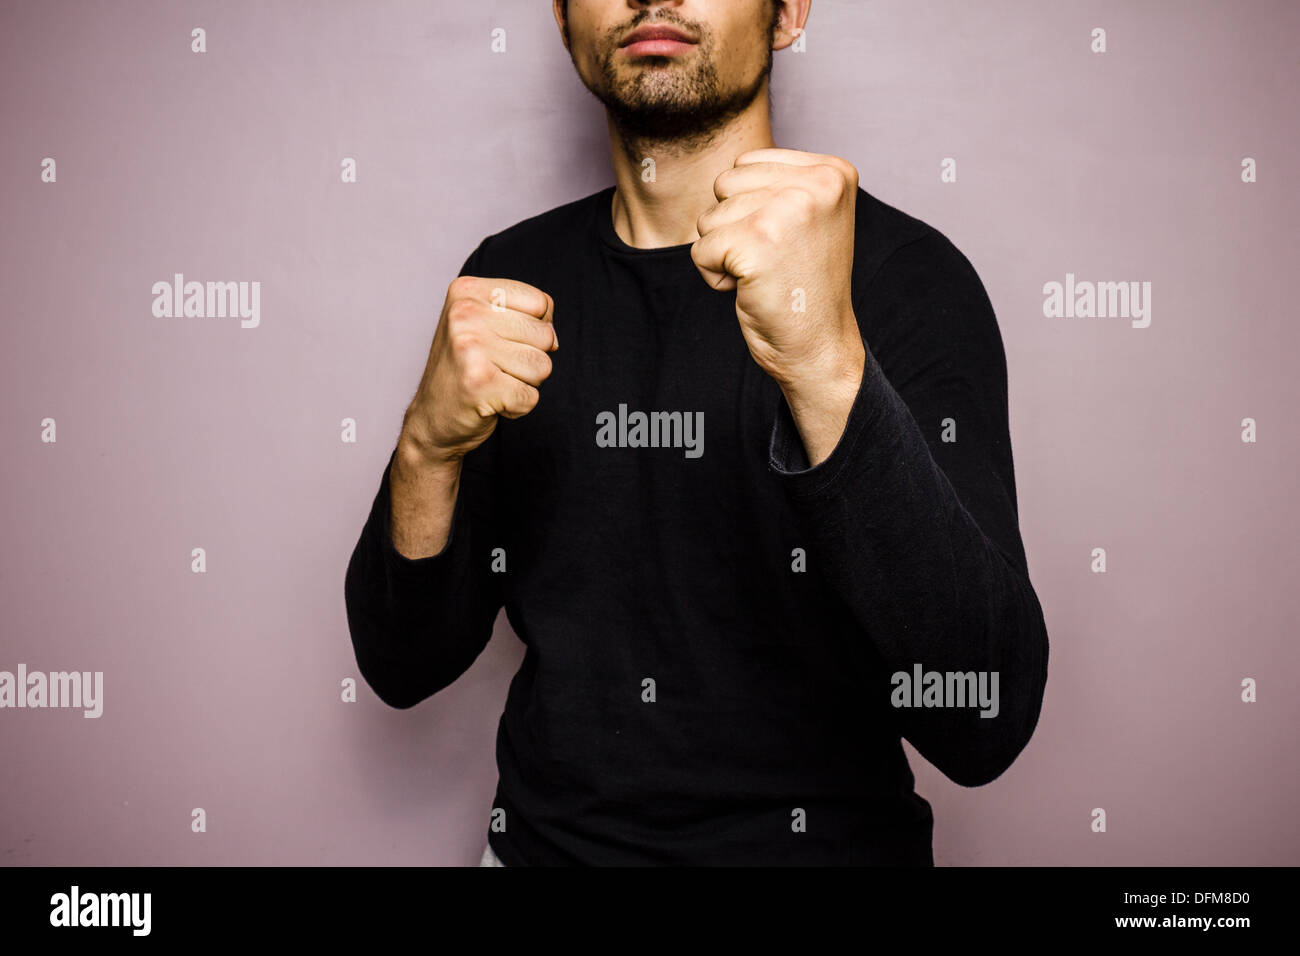 Young man raising his fists in preparation to fight - Stock Image